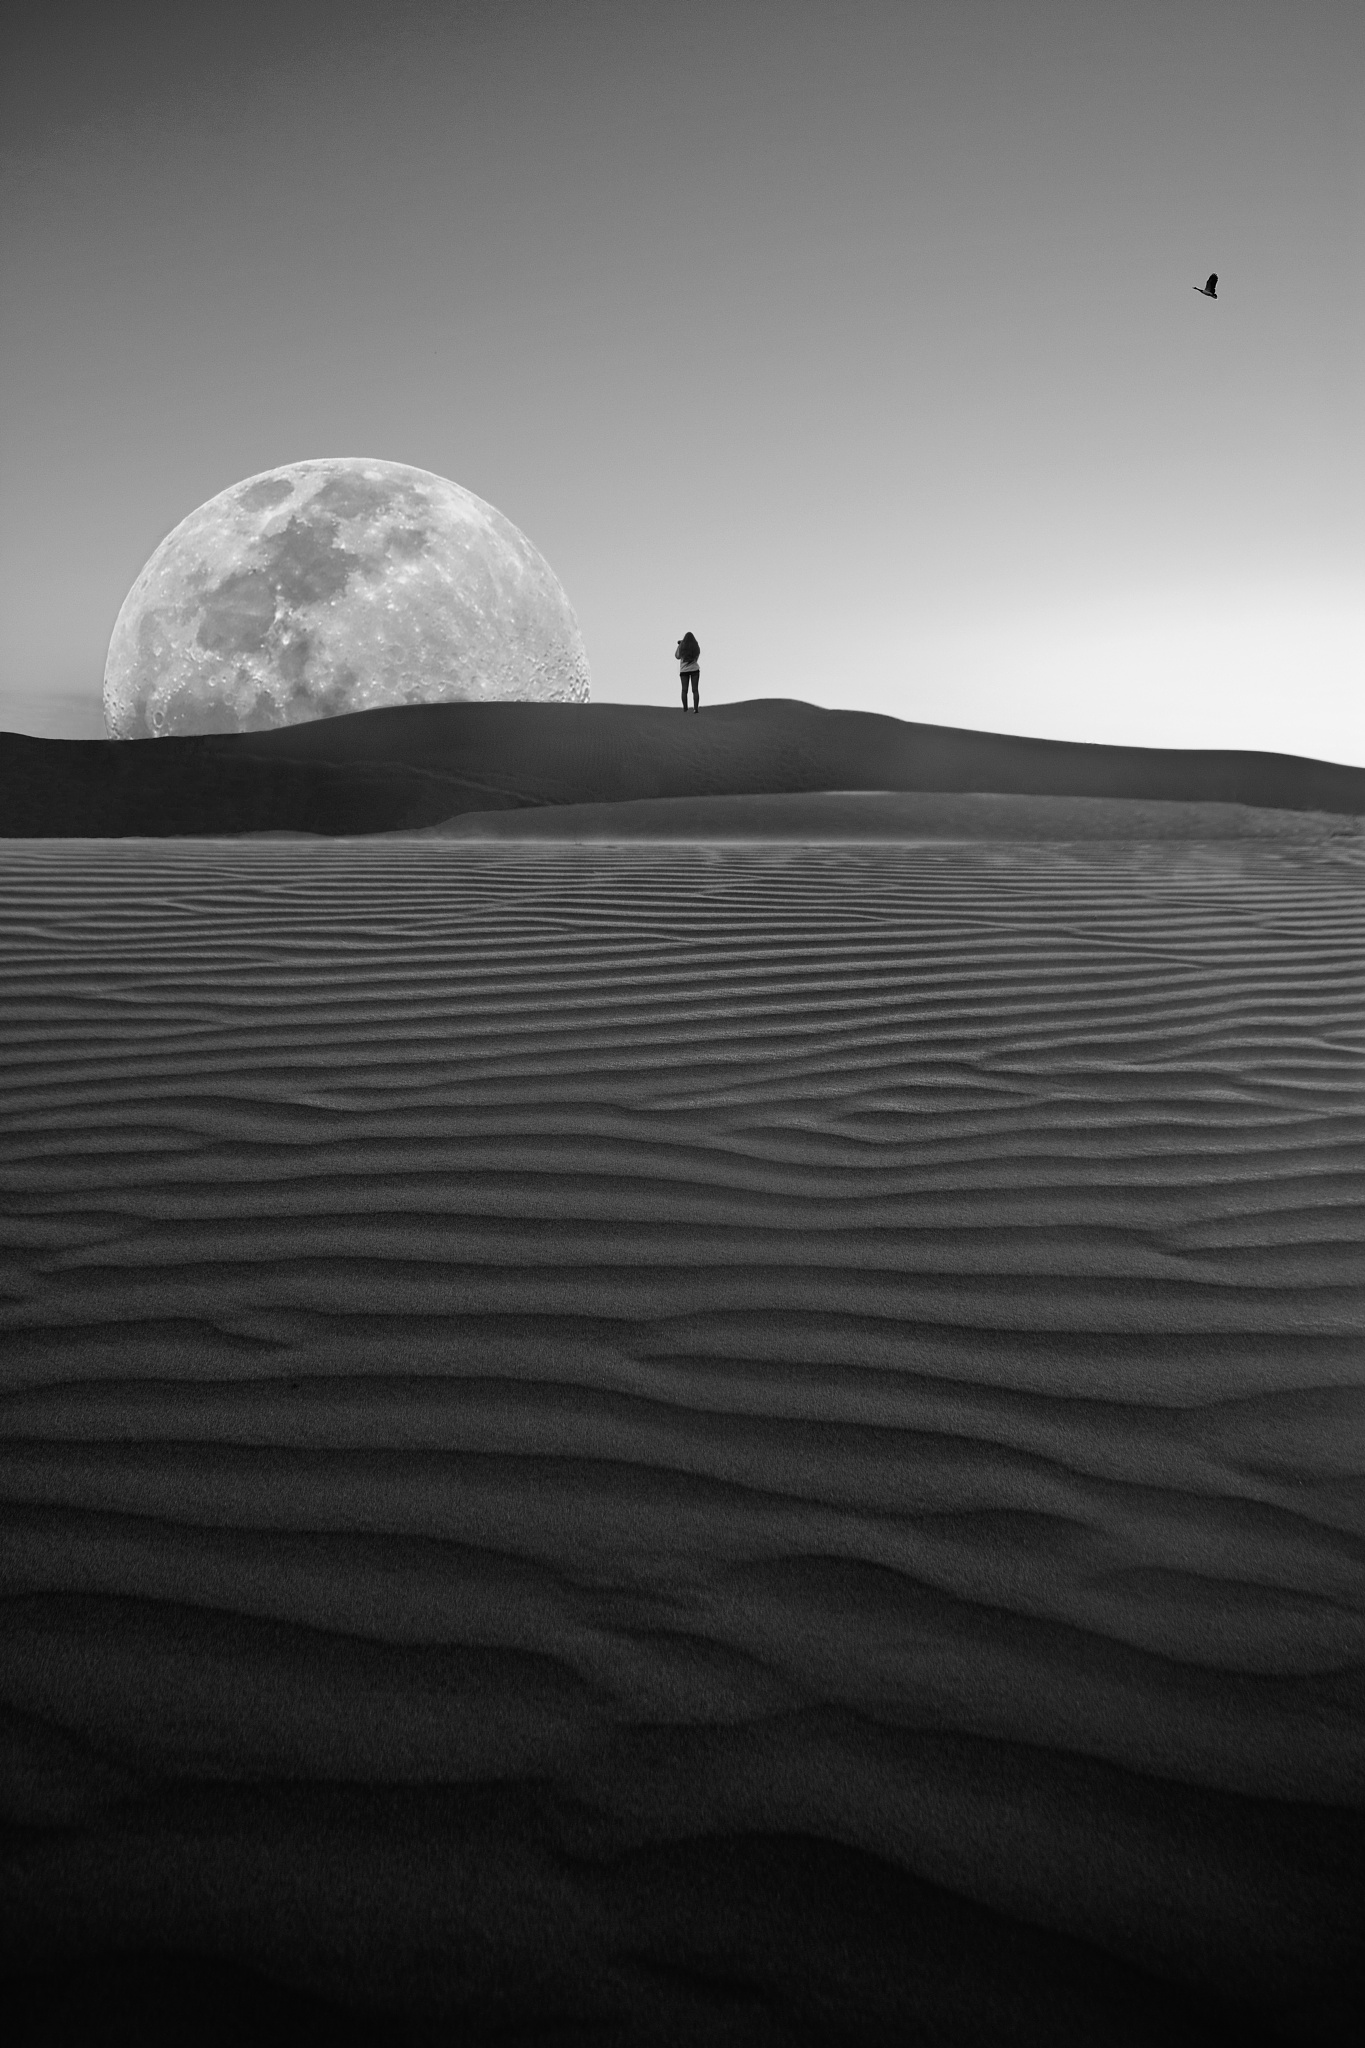 The Desert Moon Arises by Mark Vivian